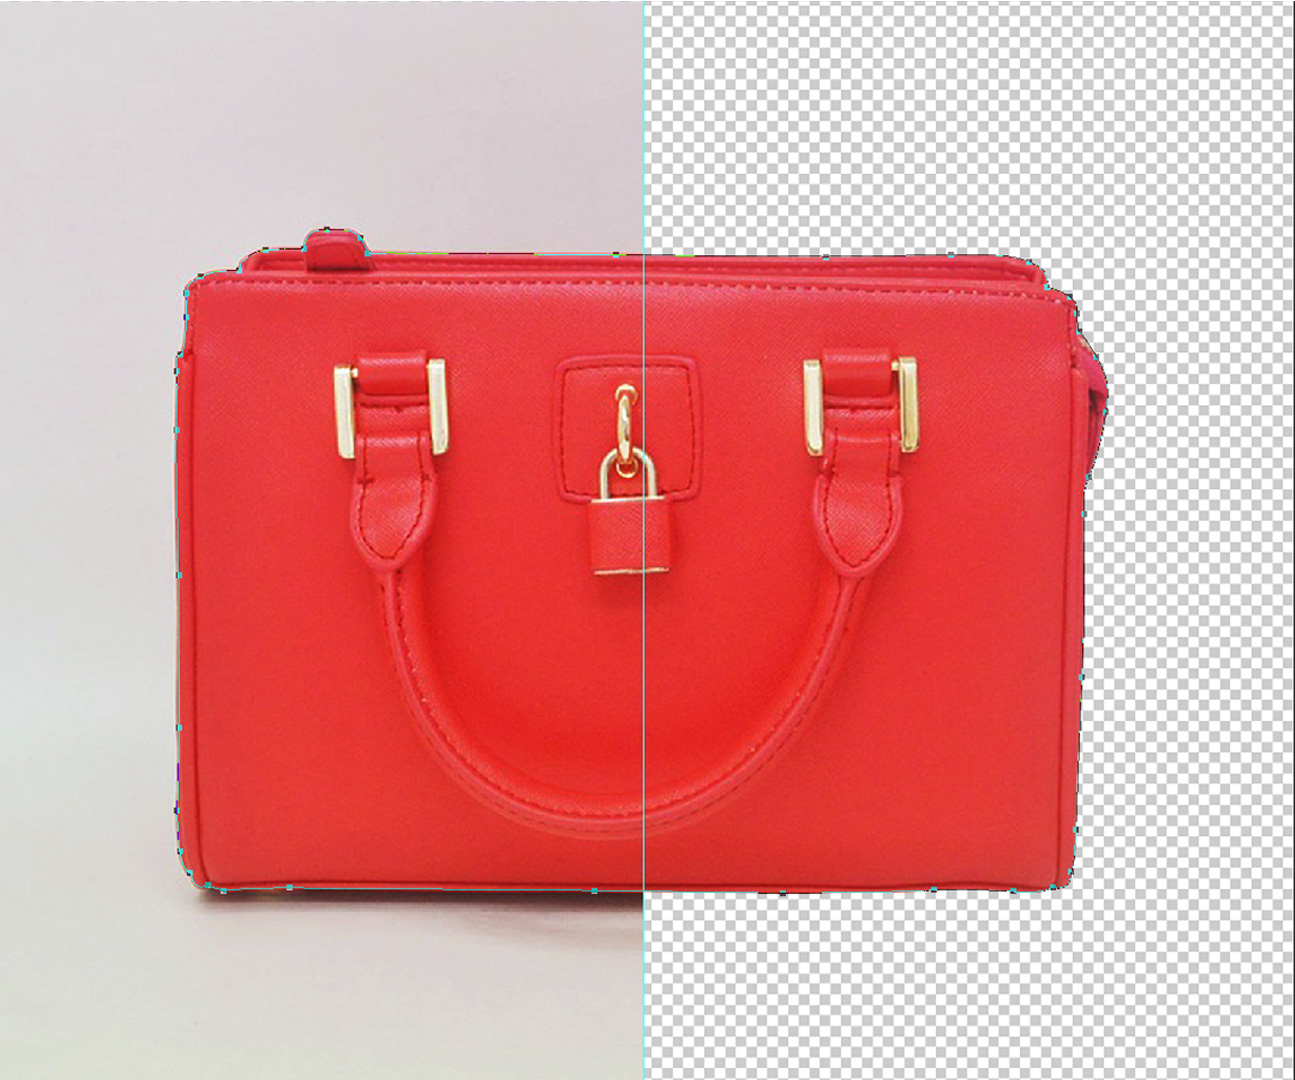 Differences-between-Clipping-Path-and-Background-Removal-01